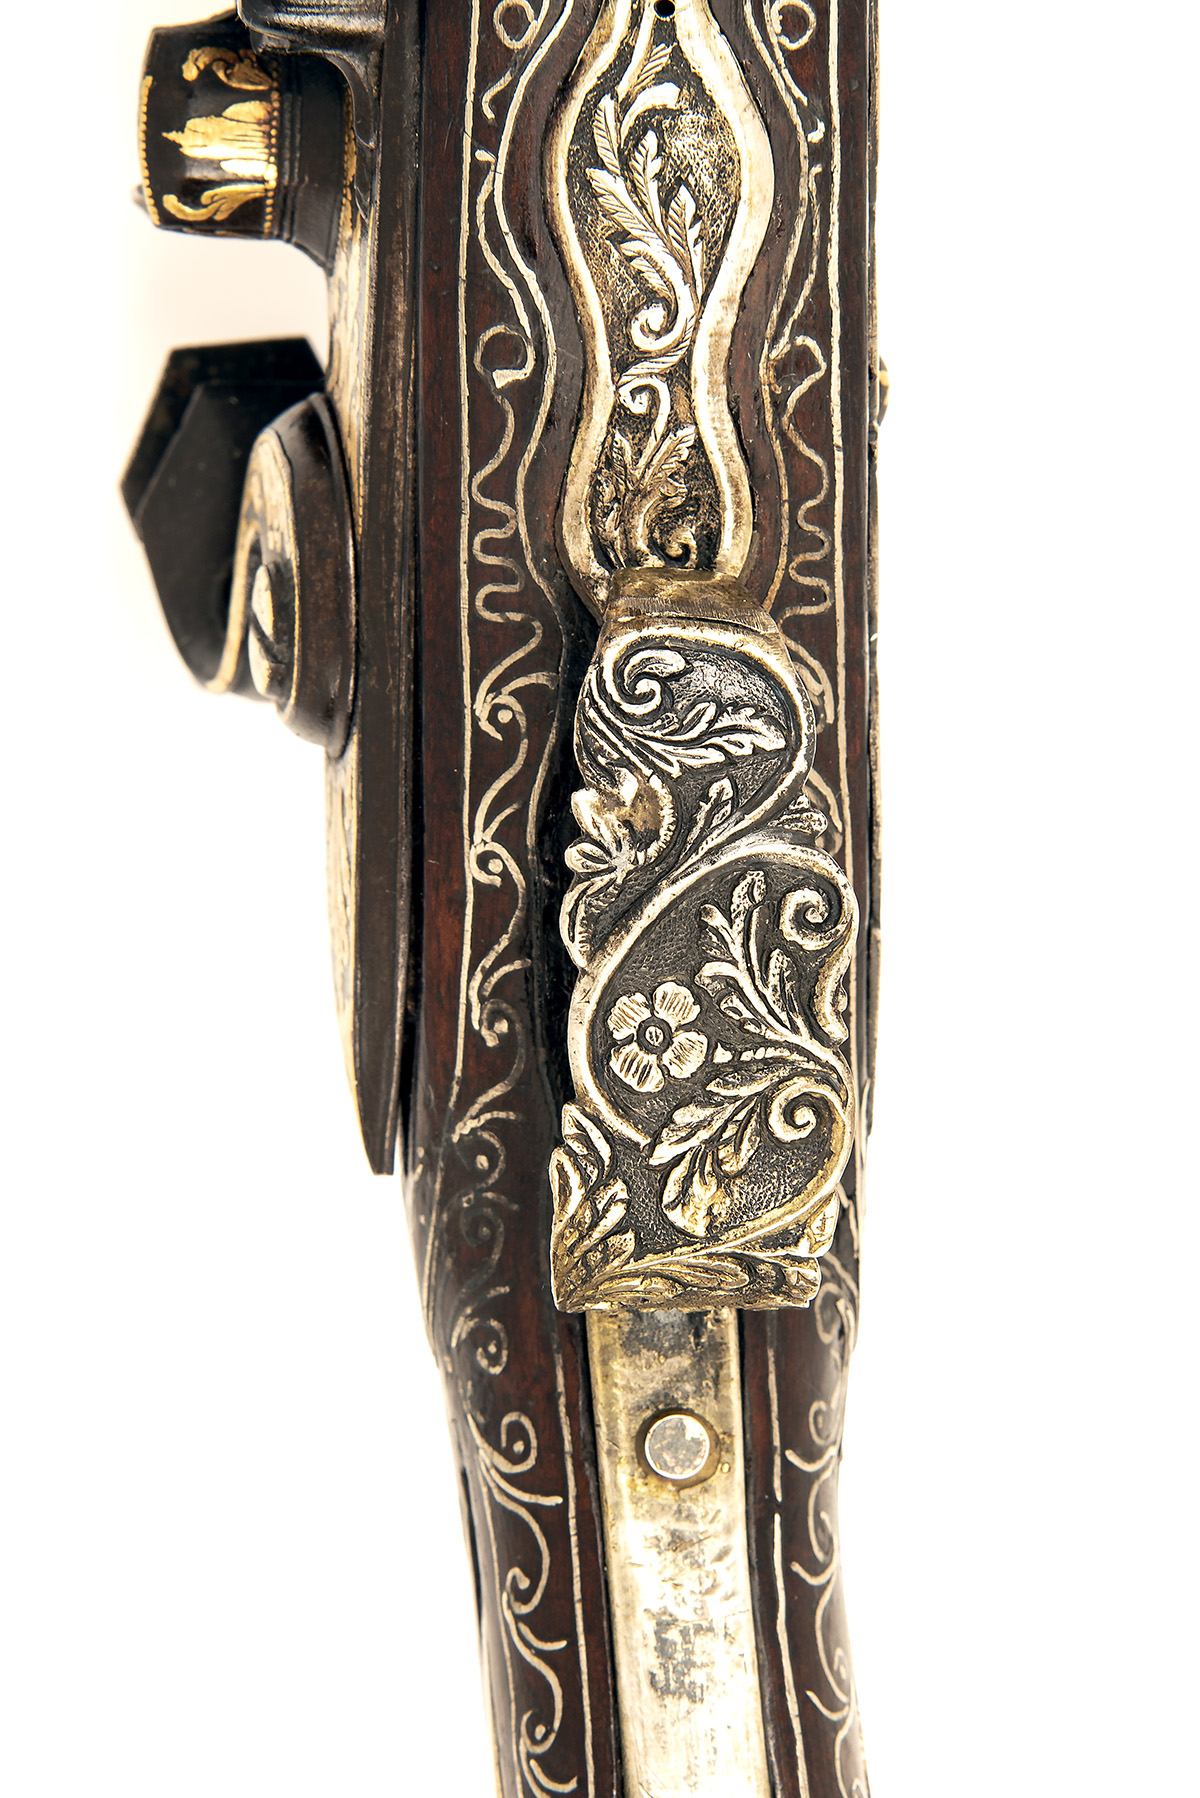 A GOOD PAIR OF 20-BORE FLINTLOCK OTTOMAN HOLSTER-PISTOLS WITH GILT DECORATION, UNSIGNED, no - Image 7 of 10